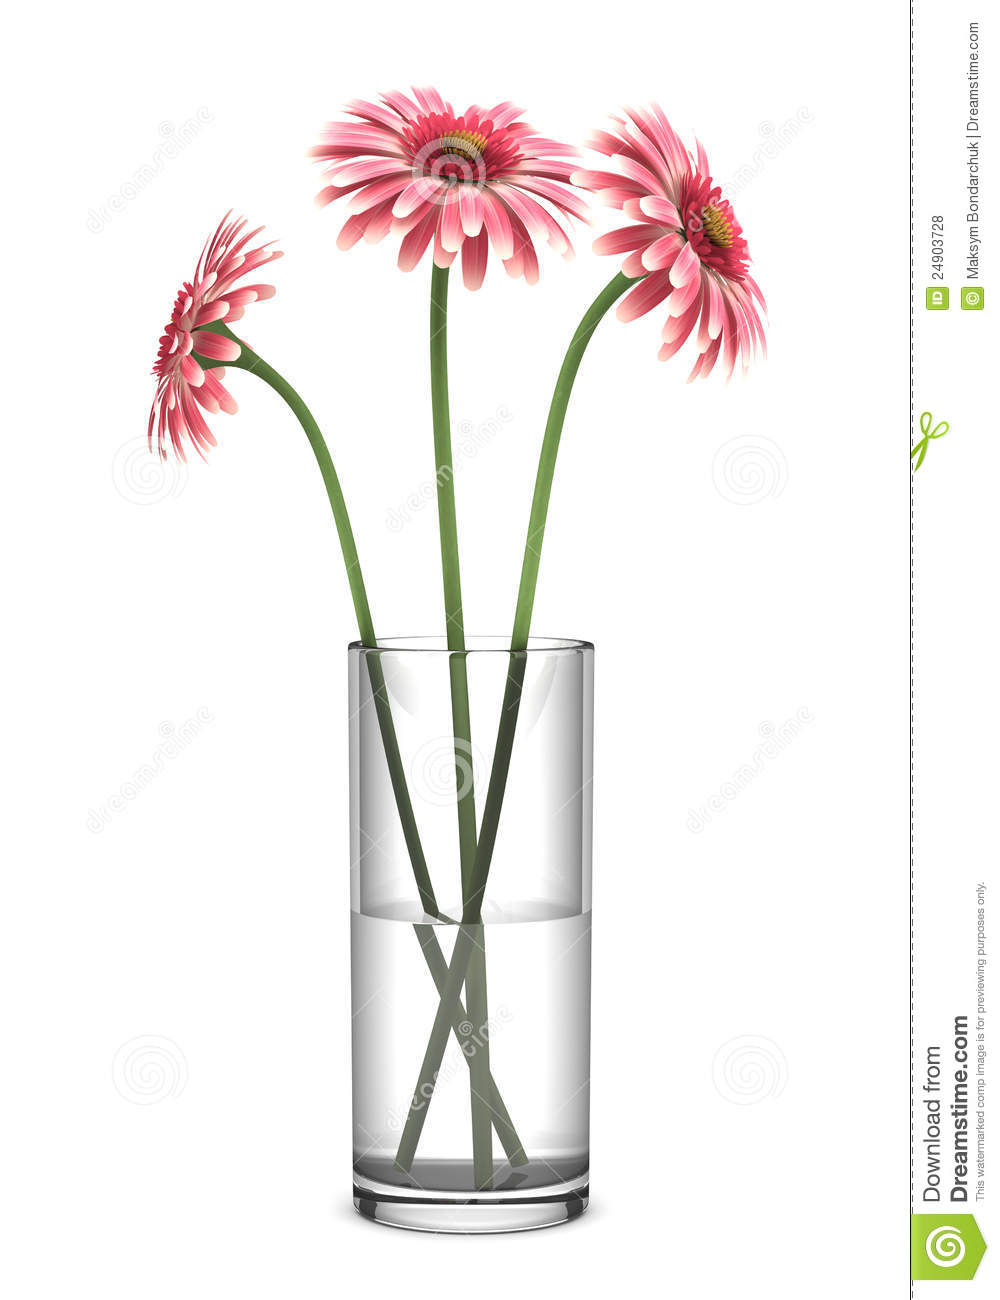 Pink Gerbera Daisies In Vase Isolated On White Royalty ...